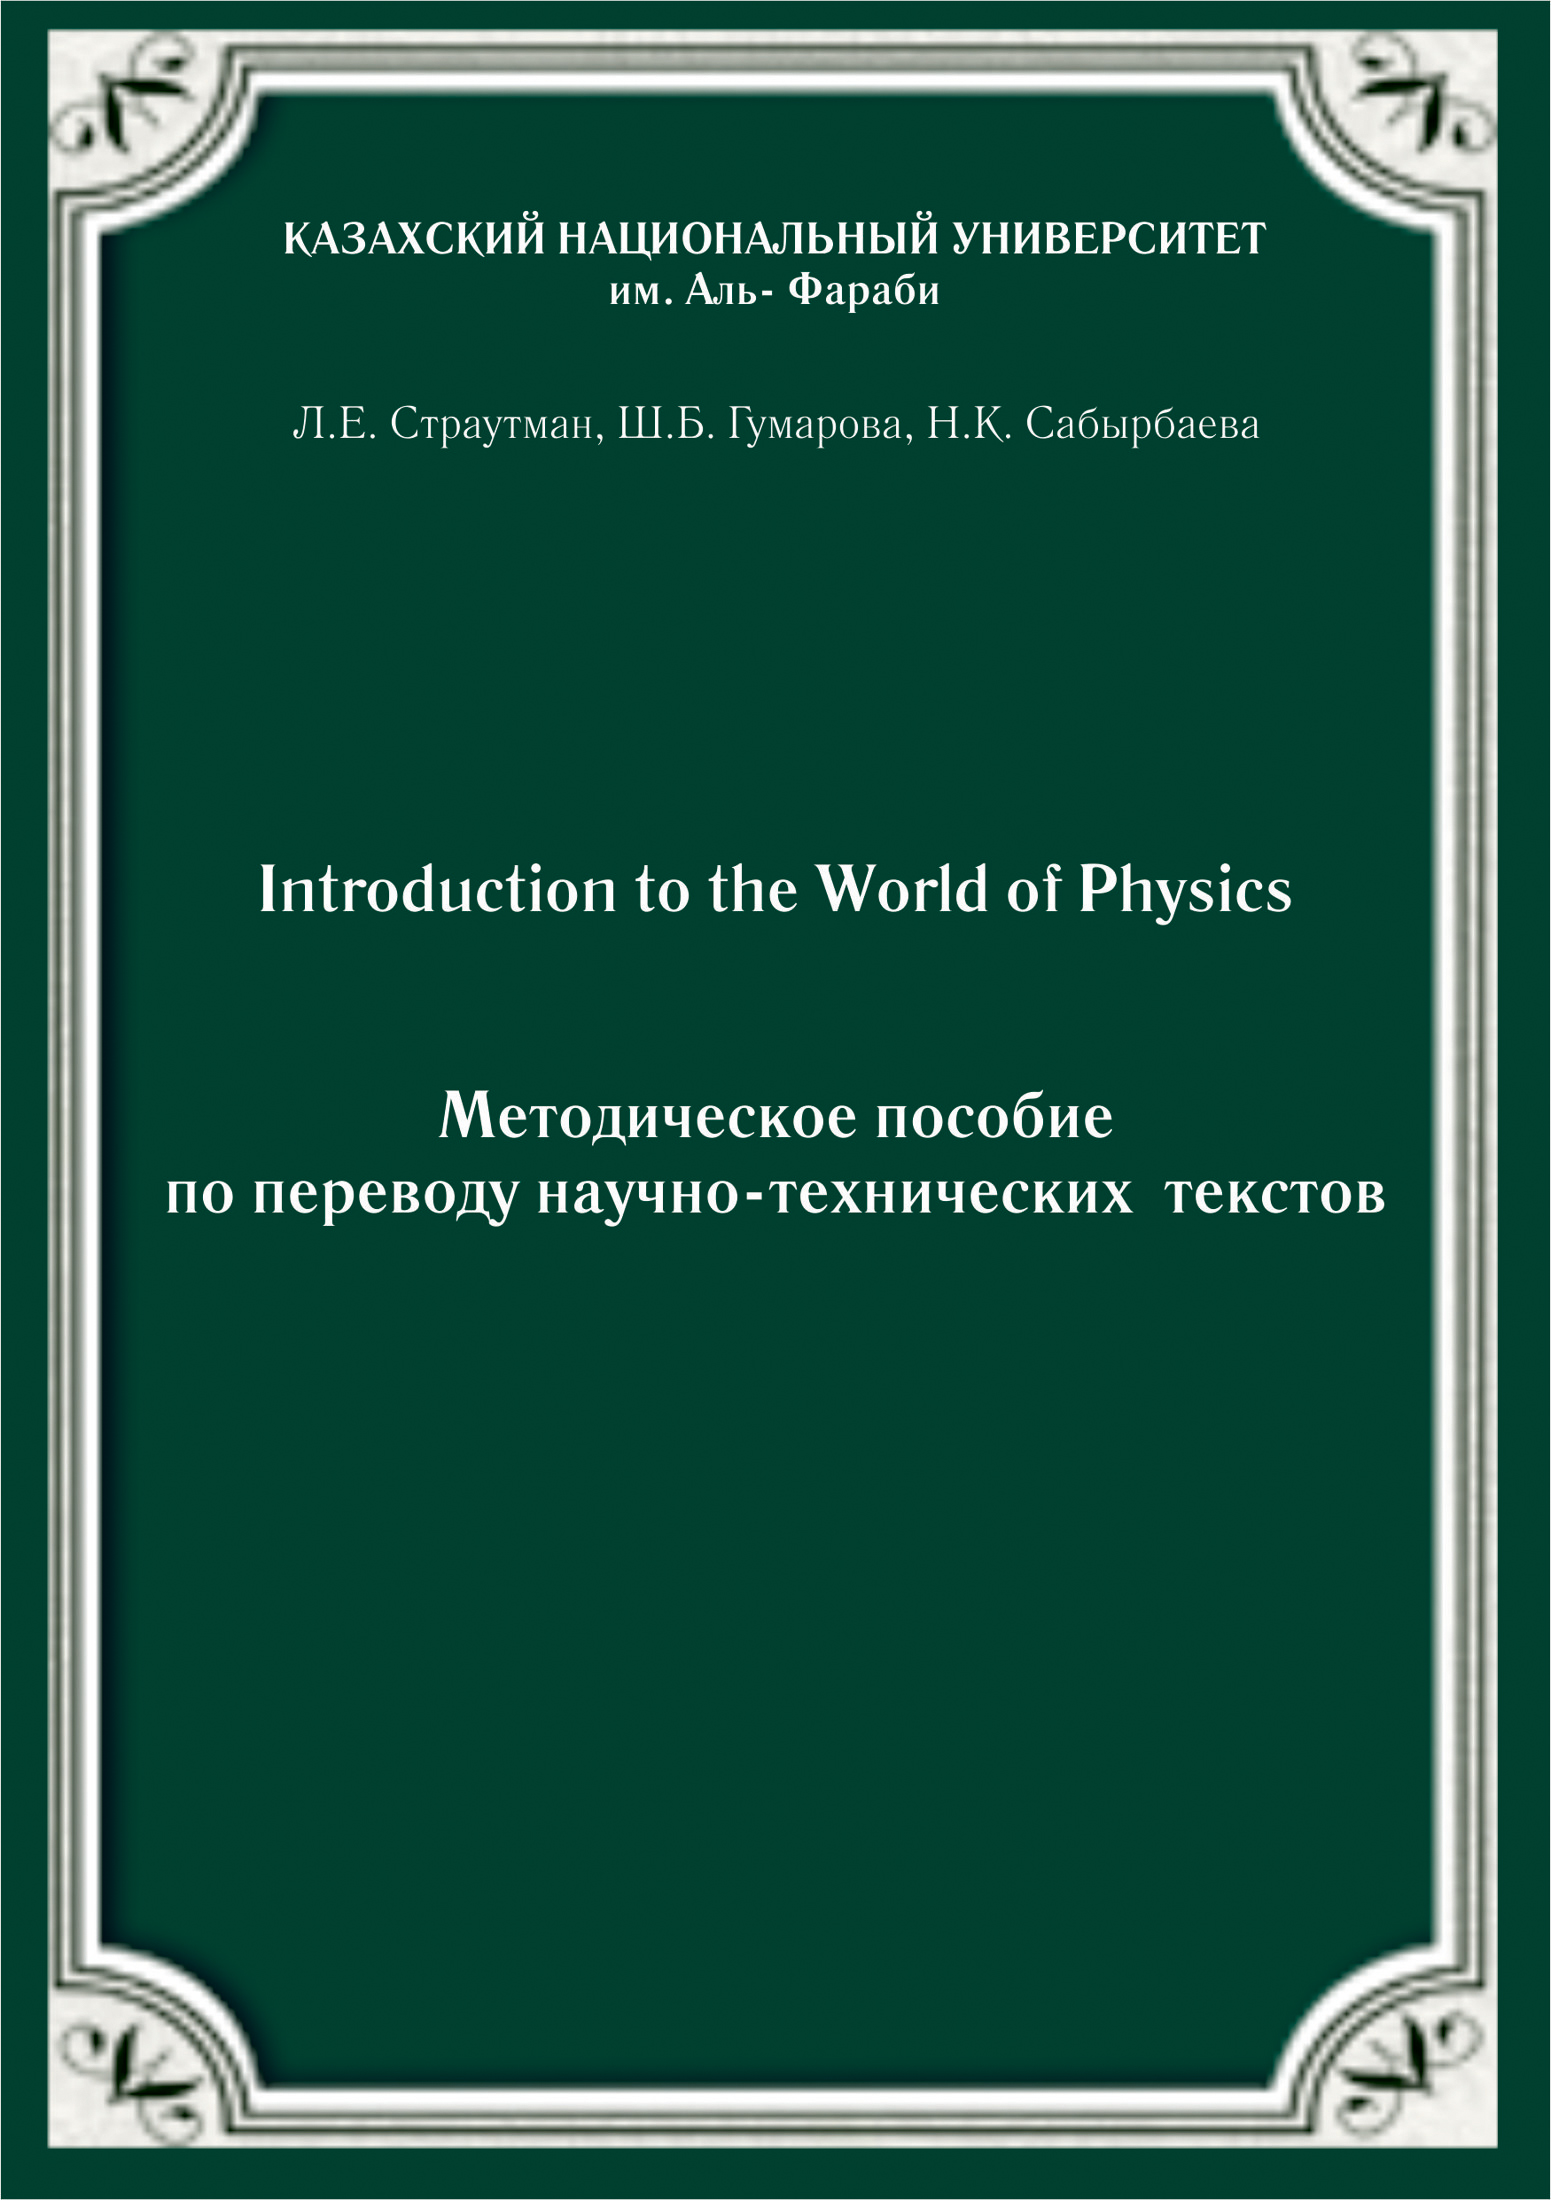 Лидия Страутман Introduction to the World of Physics. Методическое пособие по переводу научно-технических текстов beiaidi 2pcs waterproof led garden light outdoor balcony park landscape post garden lawn lamp aluminum pillar lighting ac85 265v